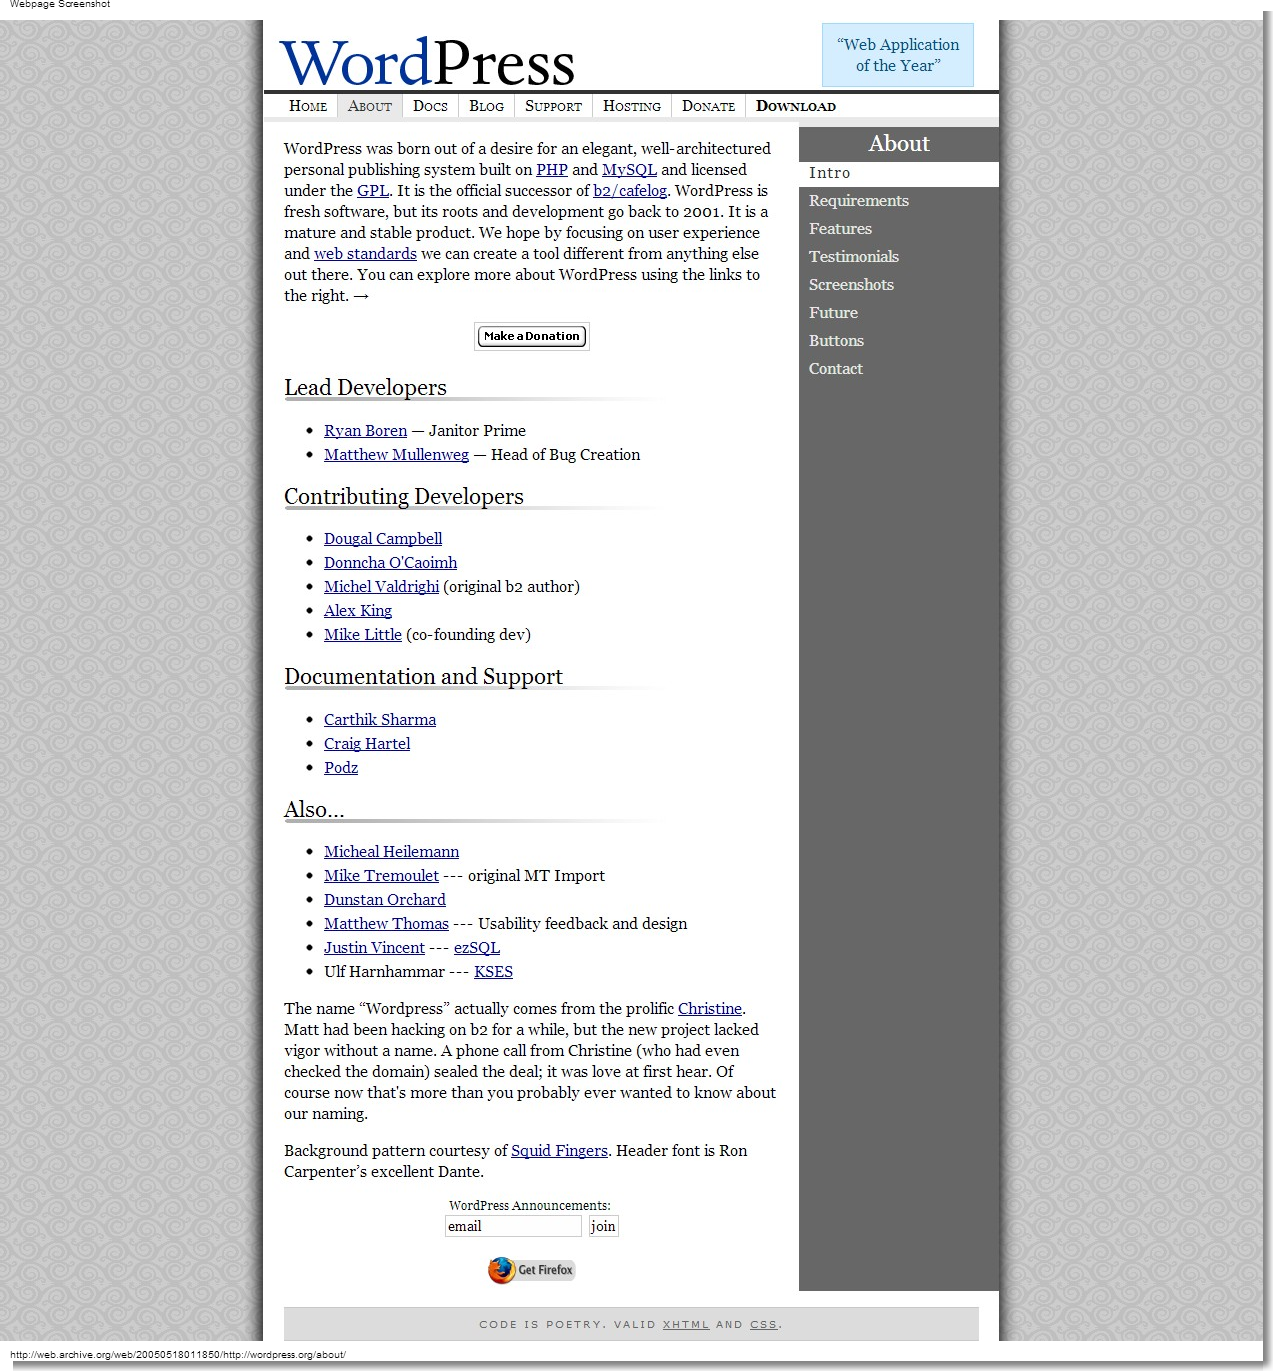 May 18, 2005 - WordPress - About